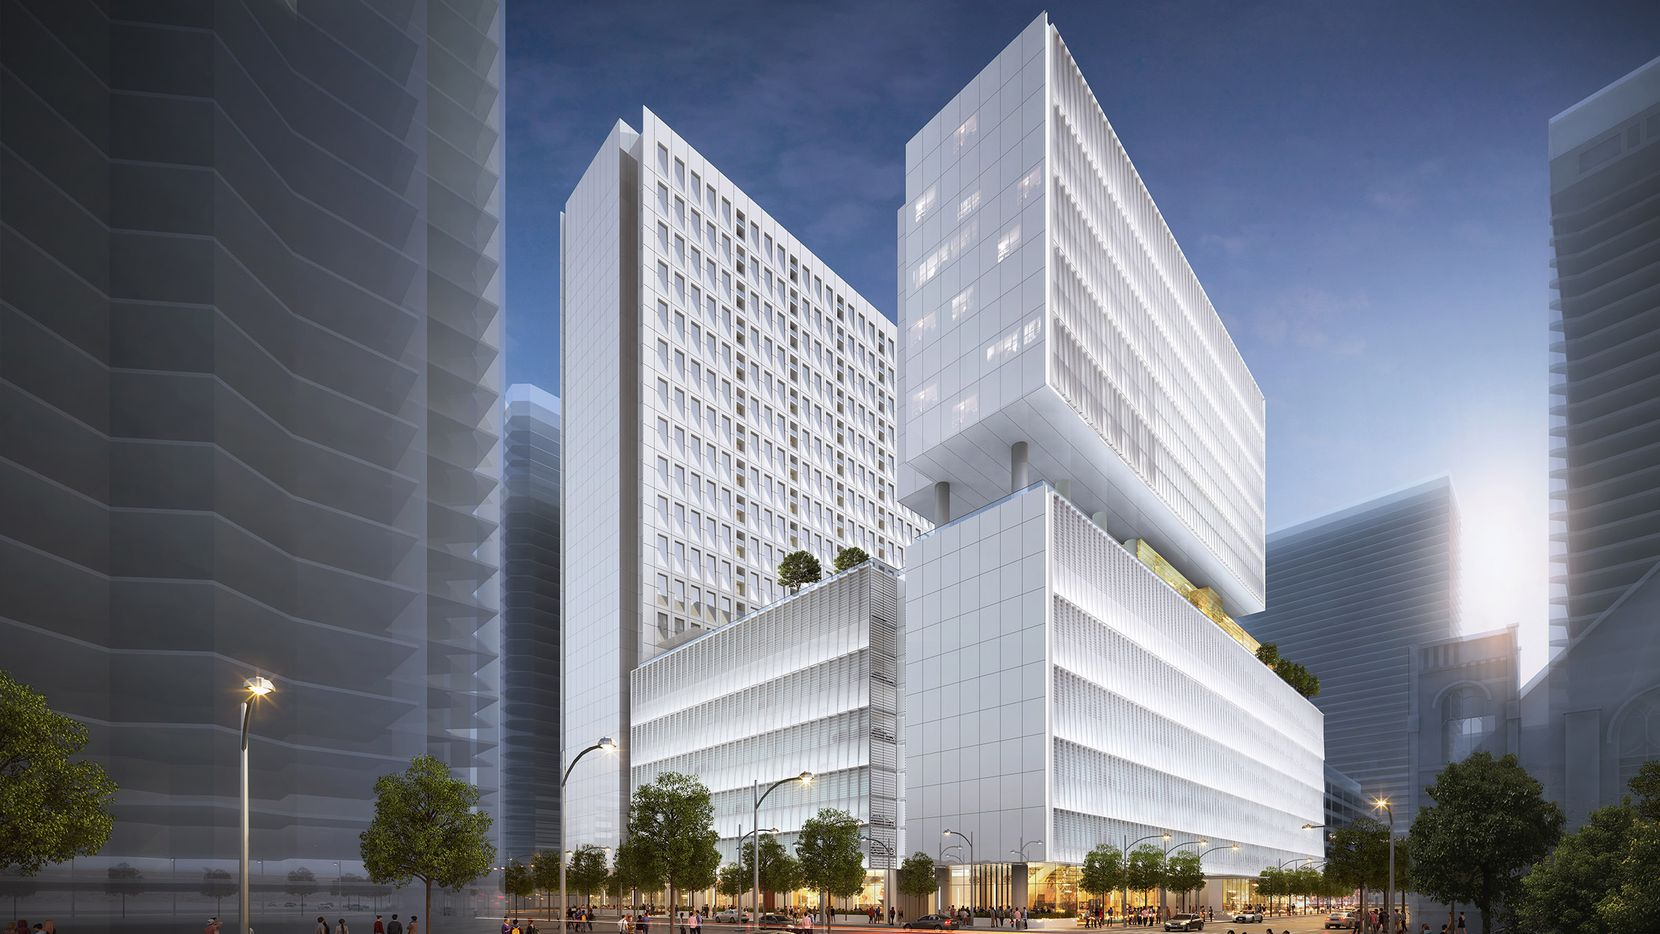 A new high-rise on Ross Avenue will add retail, restaurants, a parking garage with over 2,000 spaces and a 200-room hotel across the street from the Trammell Crow Center.